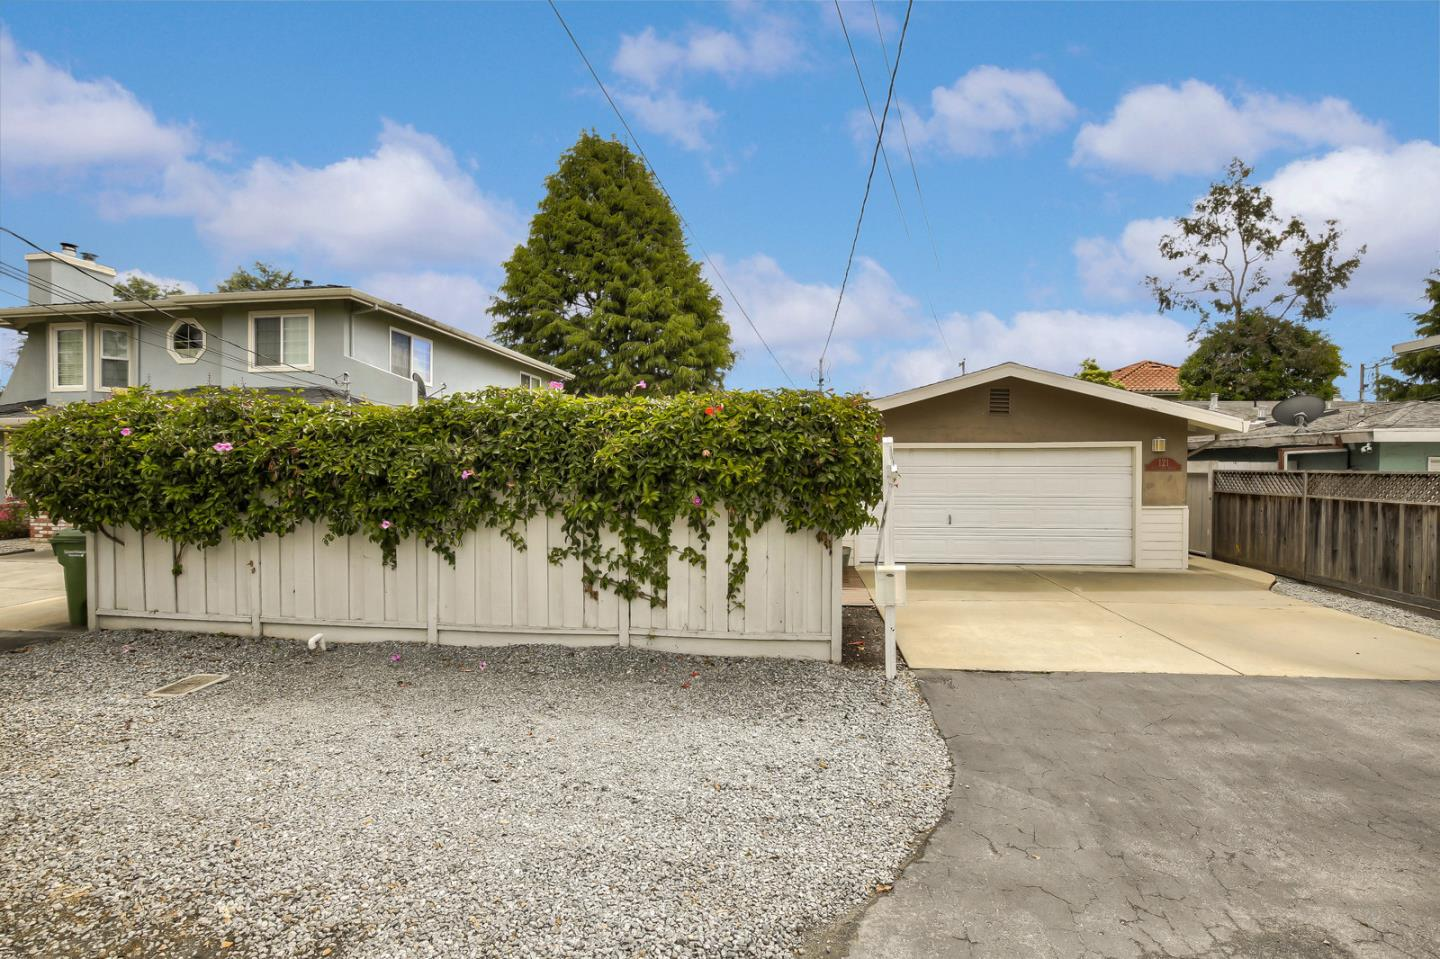 Detail Gallery Image 1 of 1 For 121 Seacliff Dr, Aptos, CA, 95003 - 3 Beds | 1 Baths